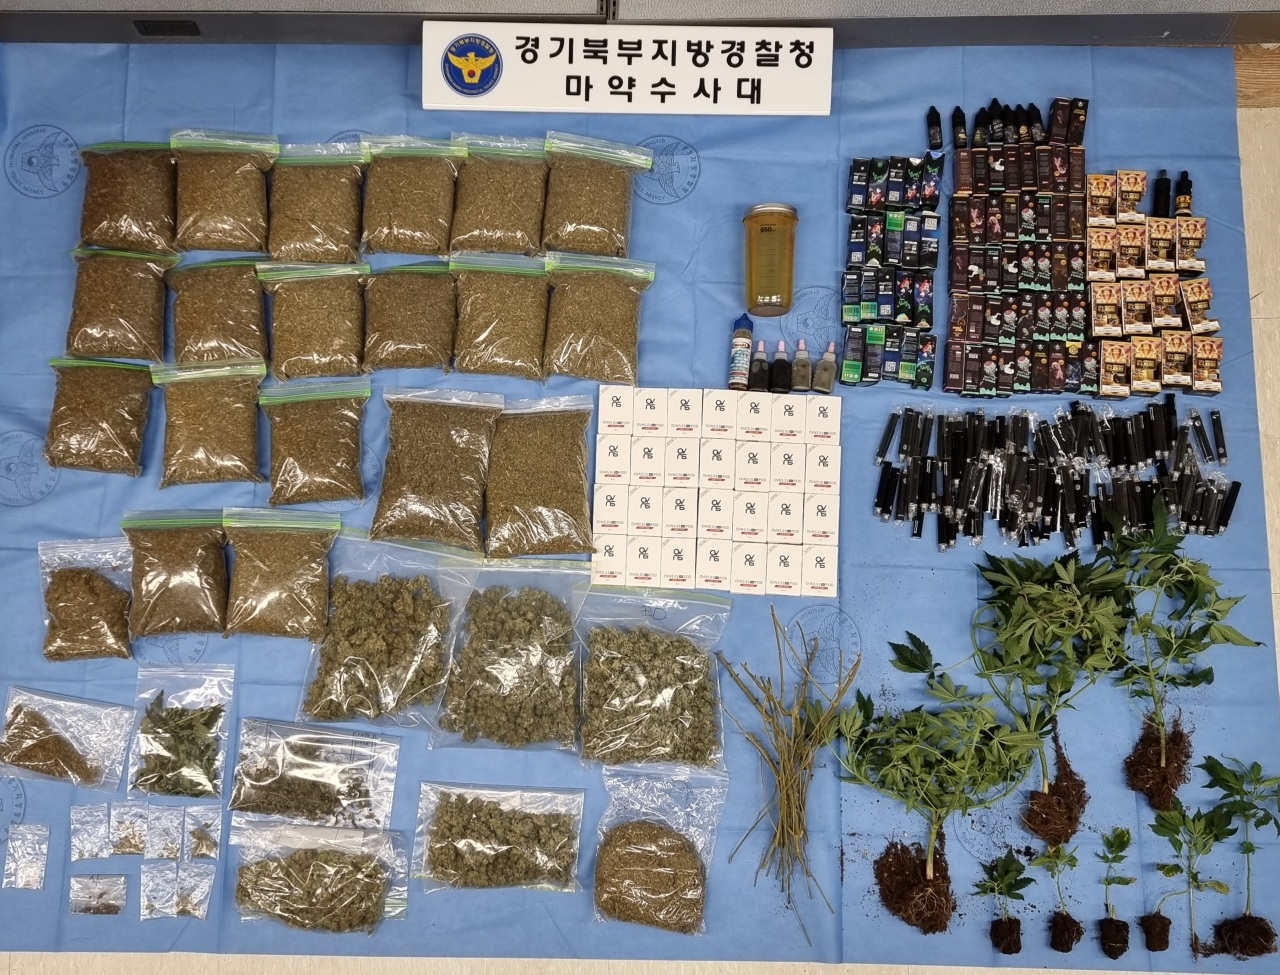 Evidence of drug offenders arrested in Gyeonggi Province (National Police Agency)